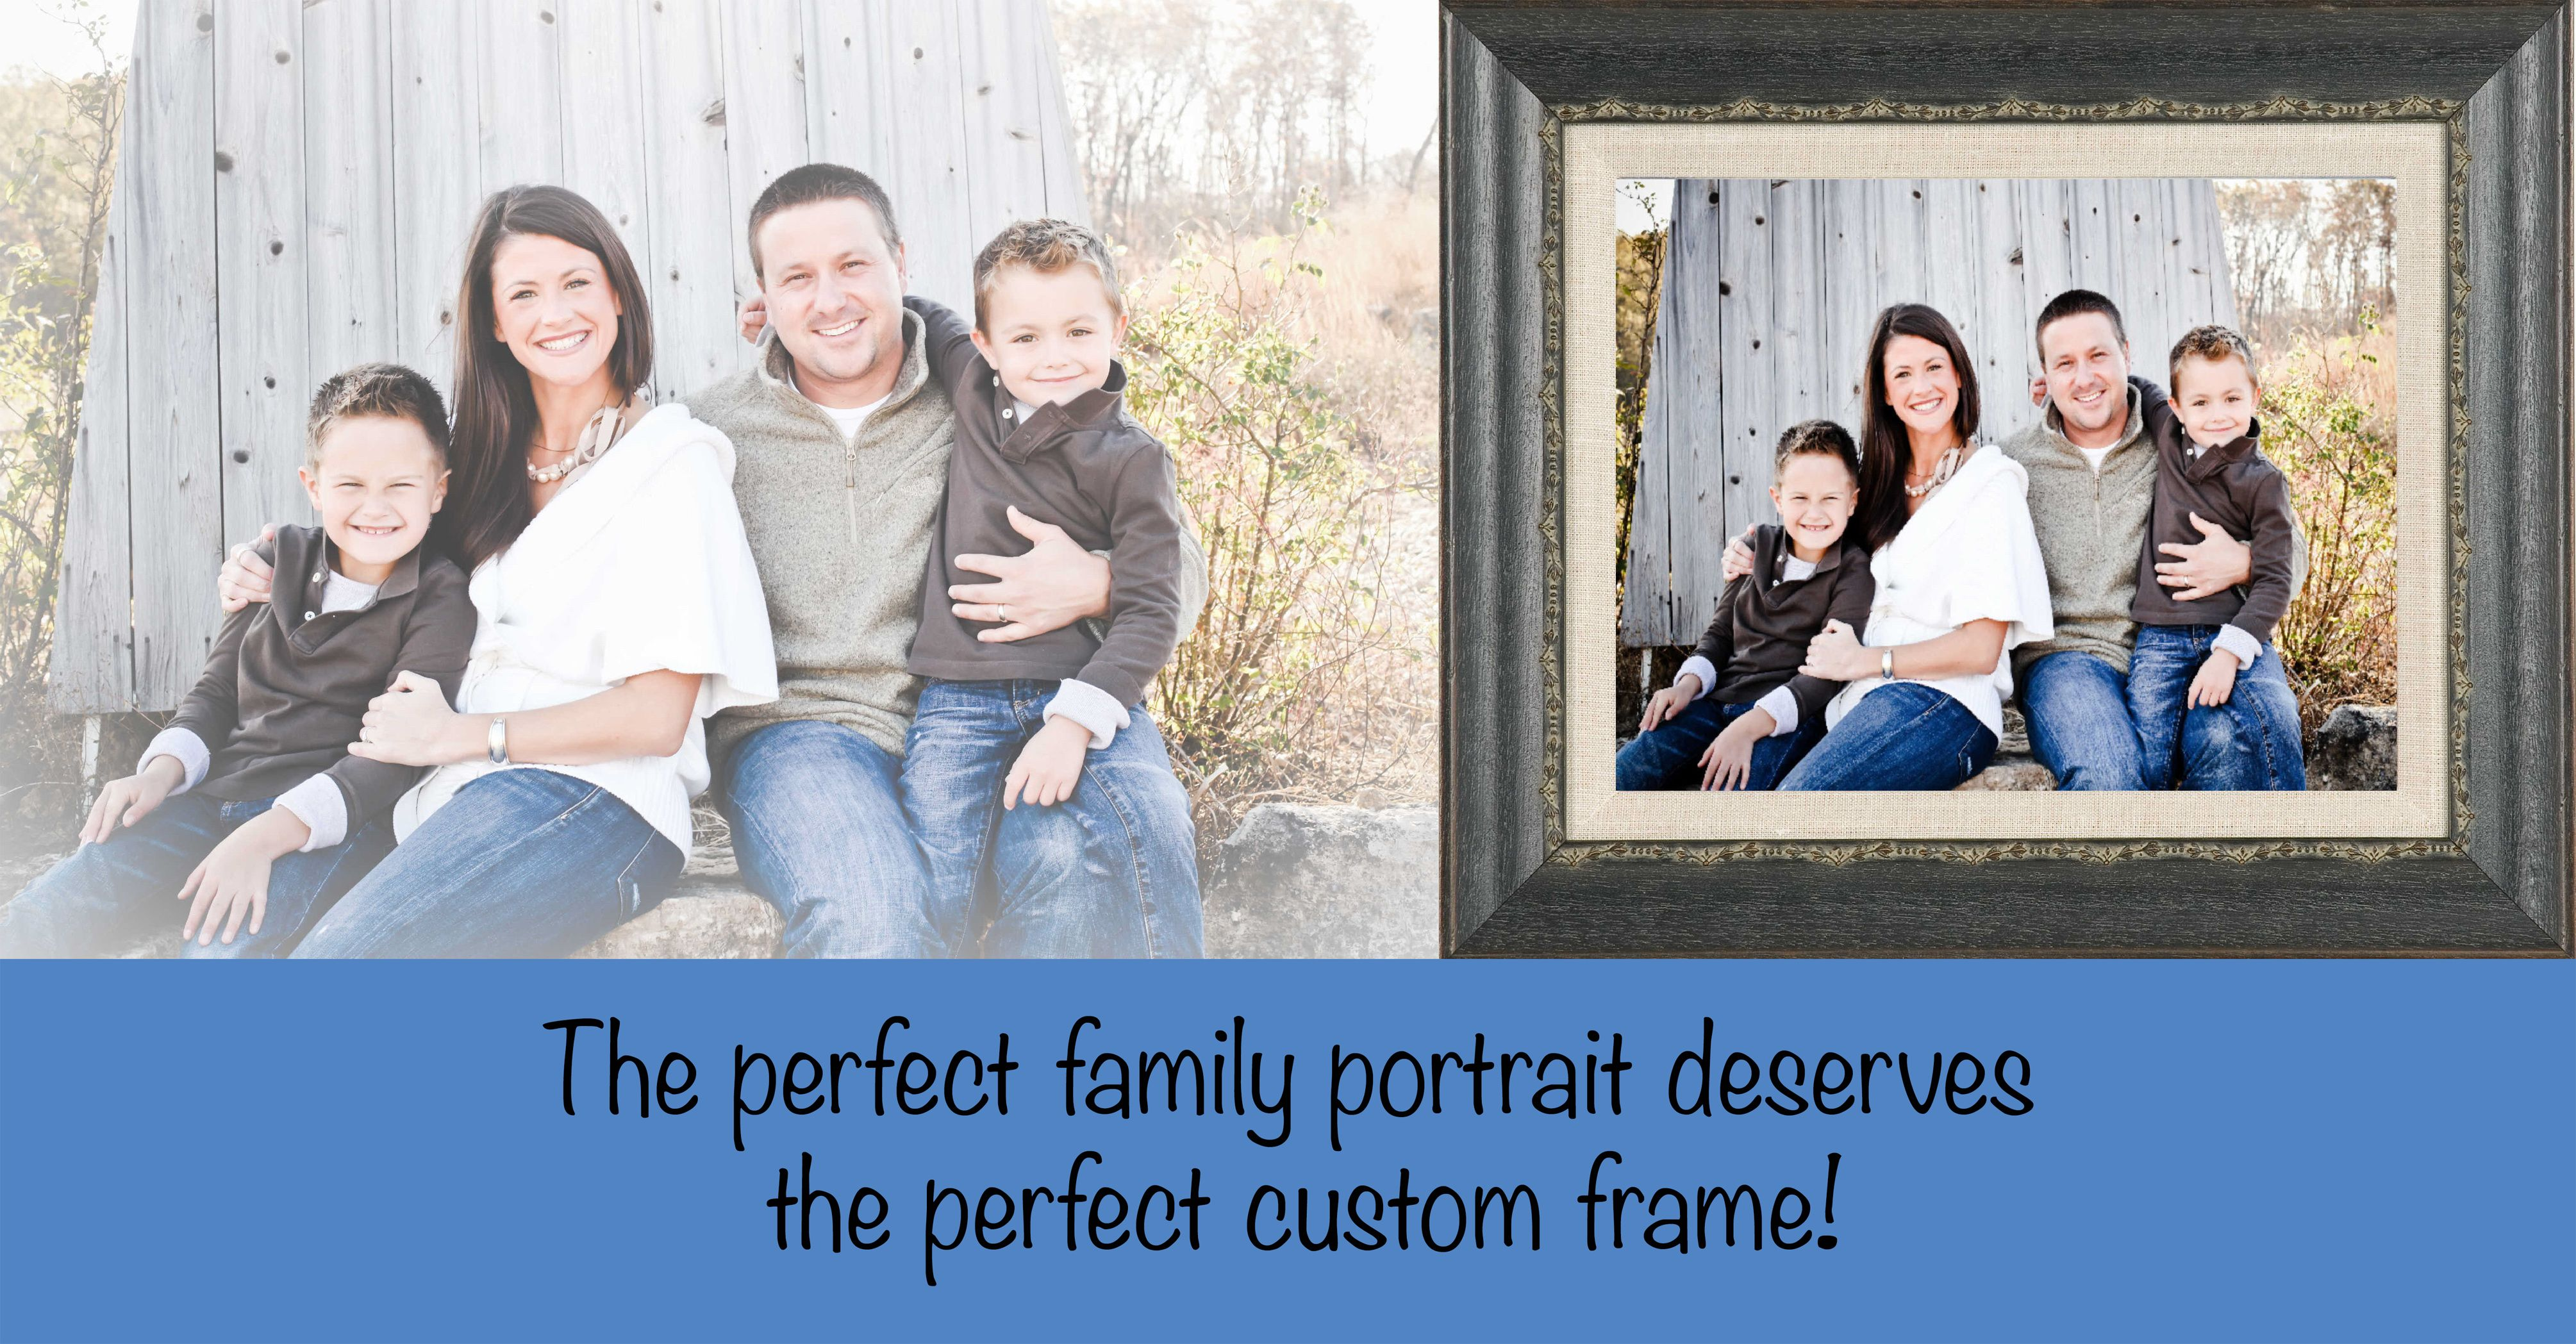 We can help you frame your family portrait to display for years to come! #frame #familyphotos #family #customframing #memories